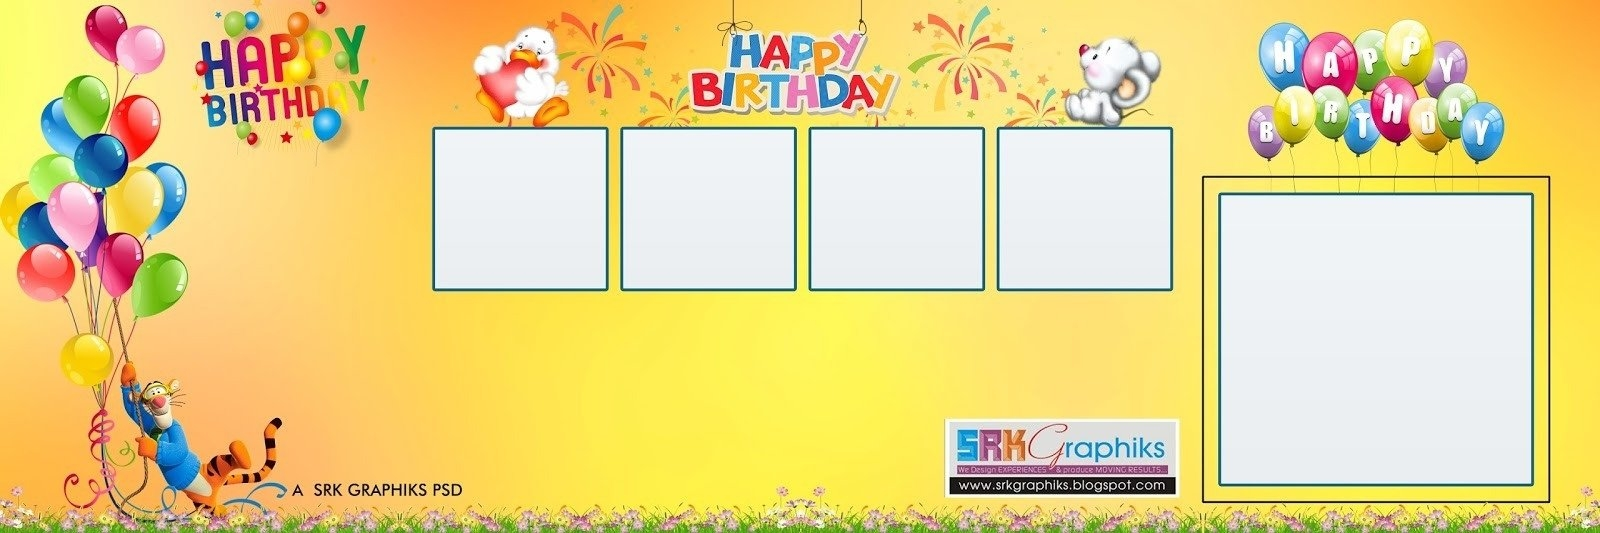 birthday flex design templates ; birthday-flex-banner-background-designnokiaaplicaciones-throughout-birthday-flex-banner-background-design